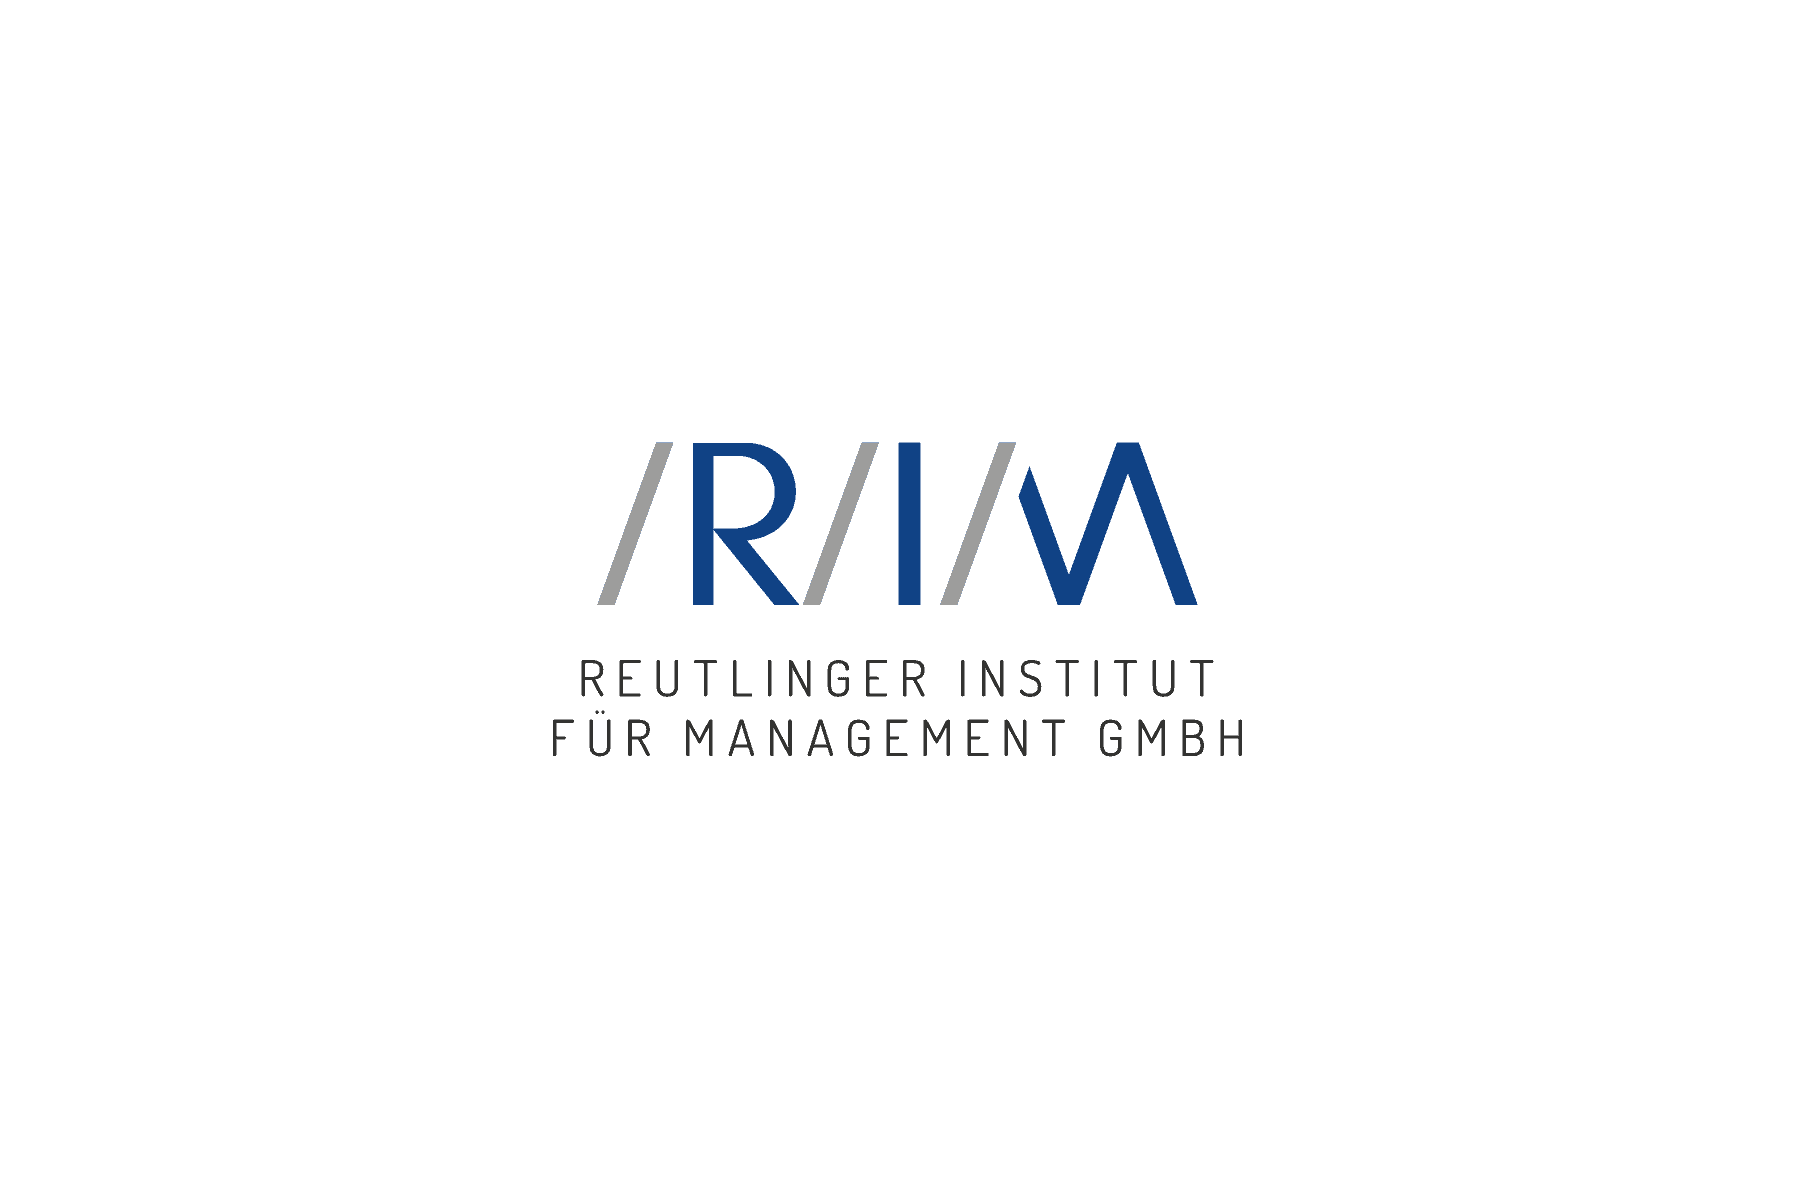 Logo-Design für Management